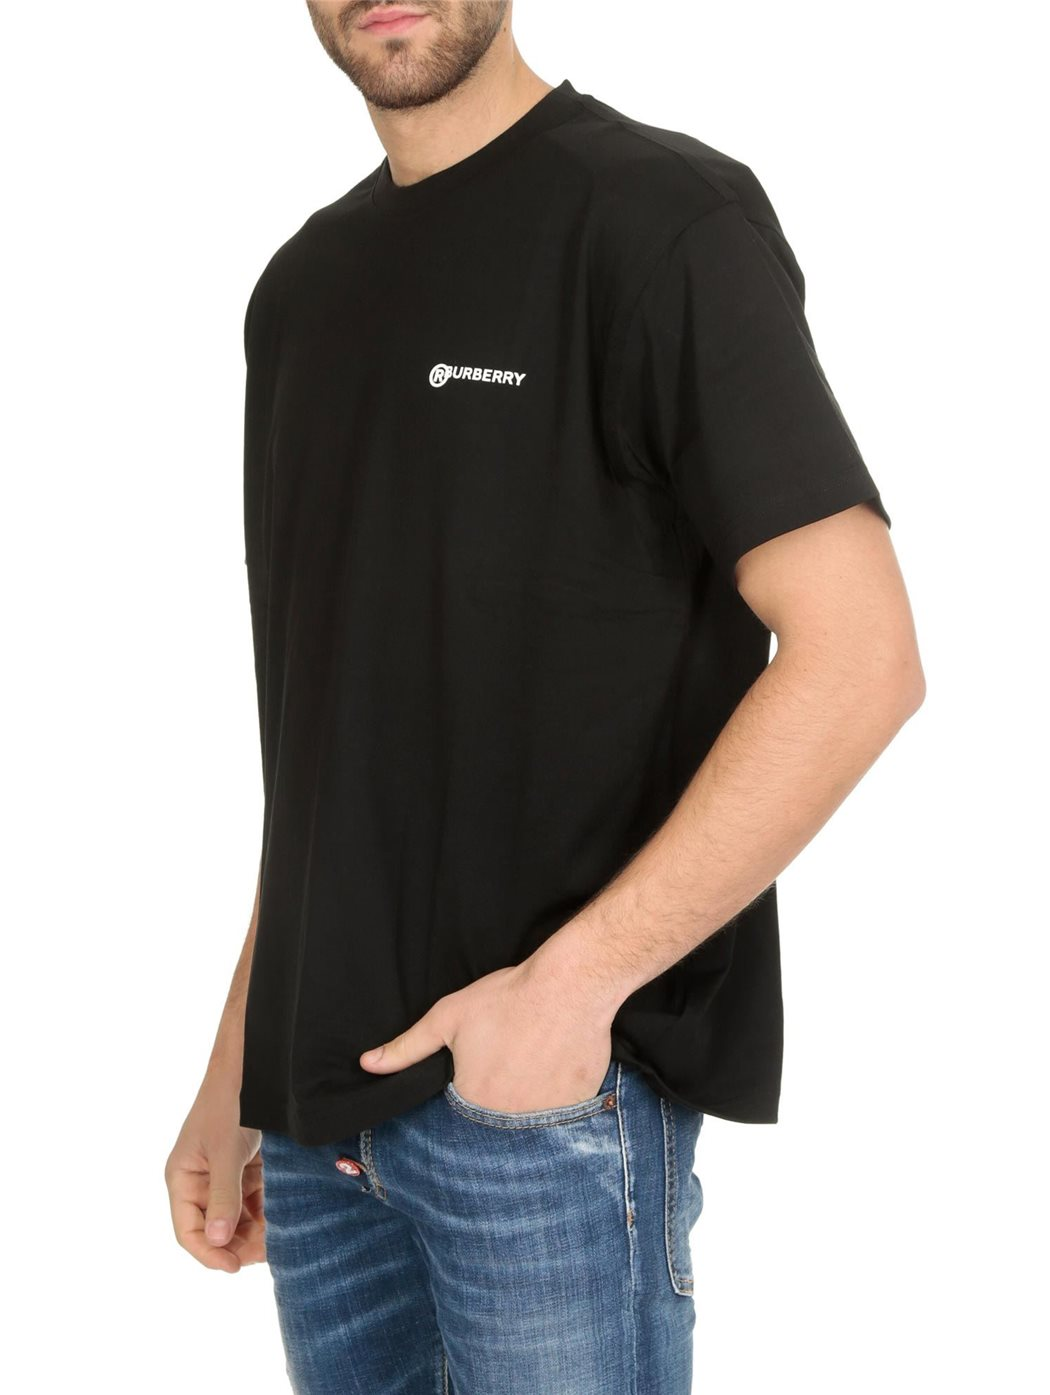 BURBERRY 8025657 Black T-SHIRT